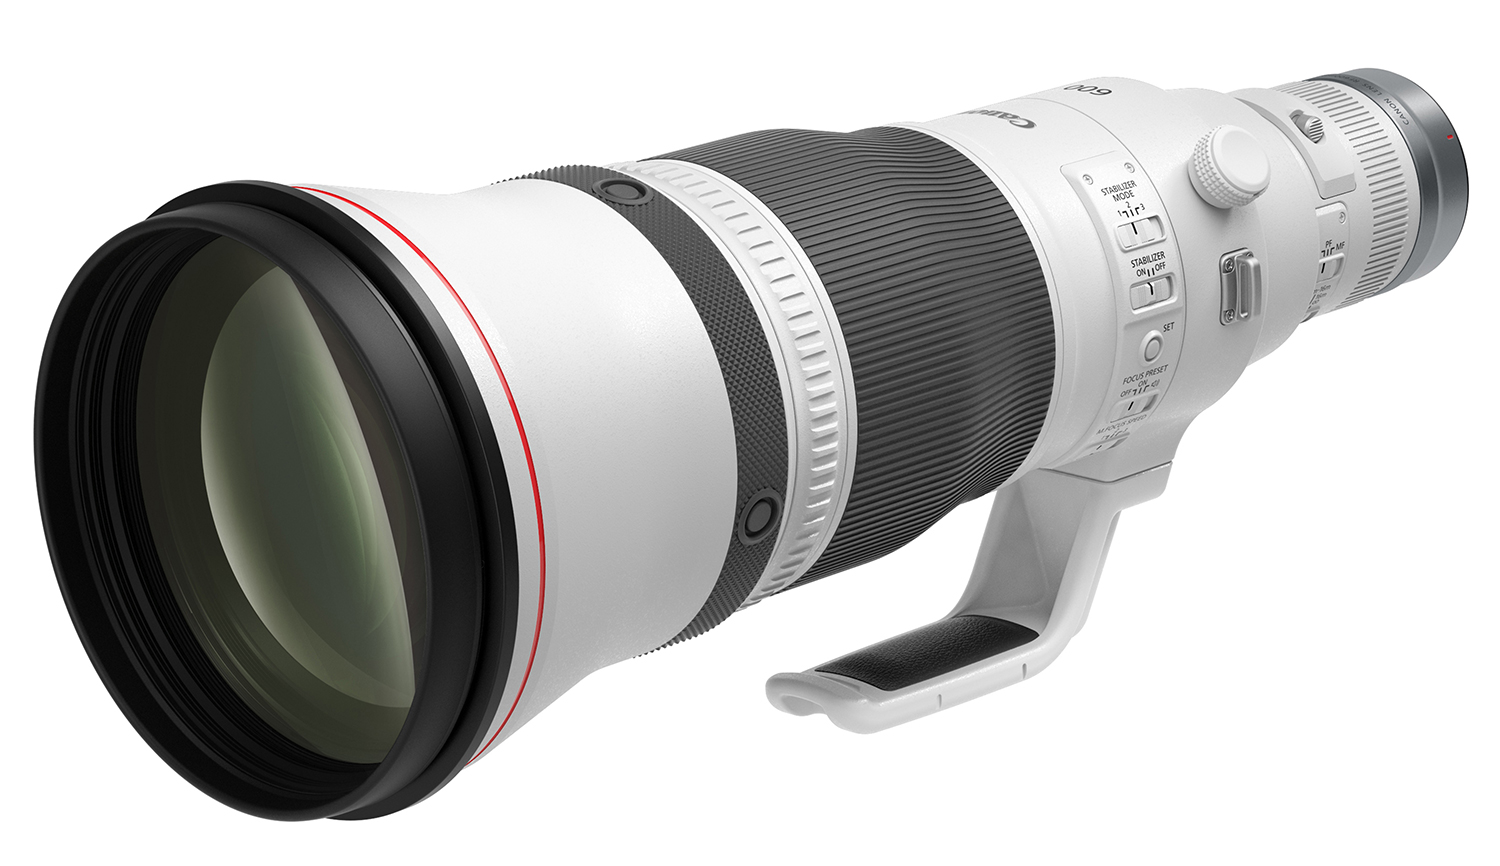 Photo of the Canon RF600mm